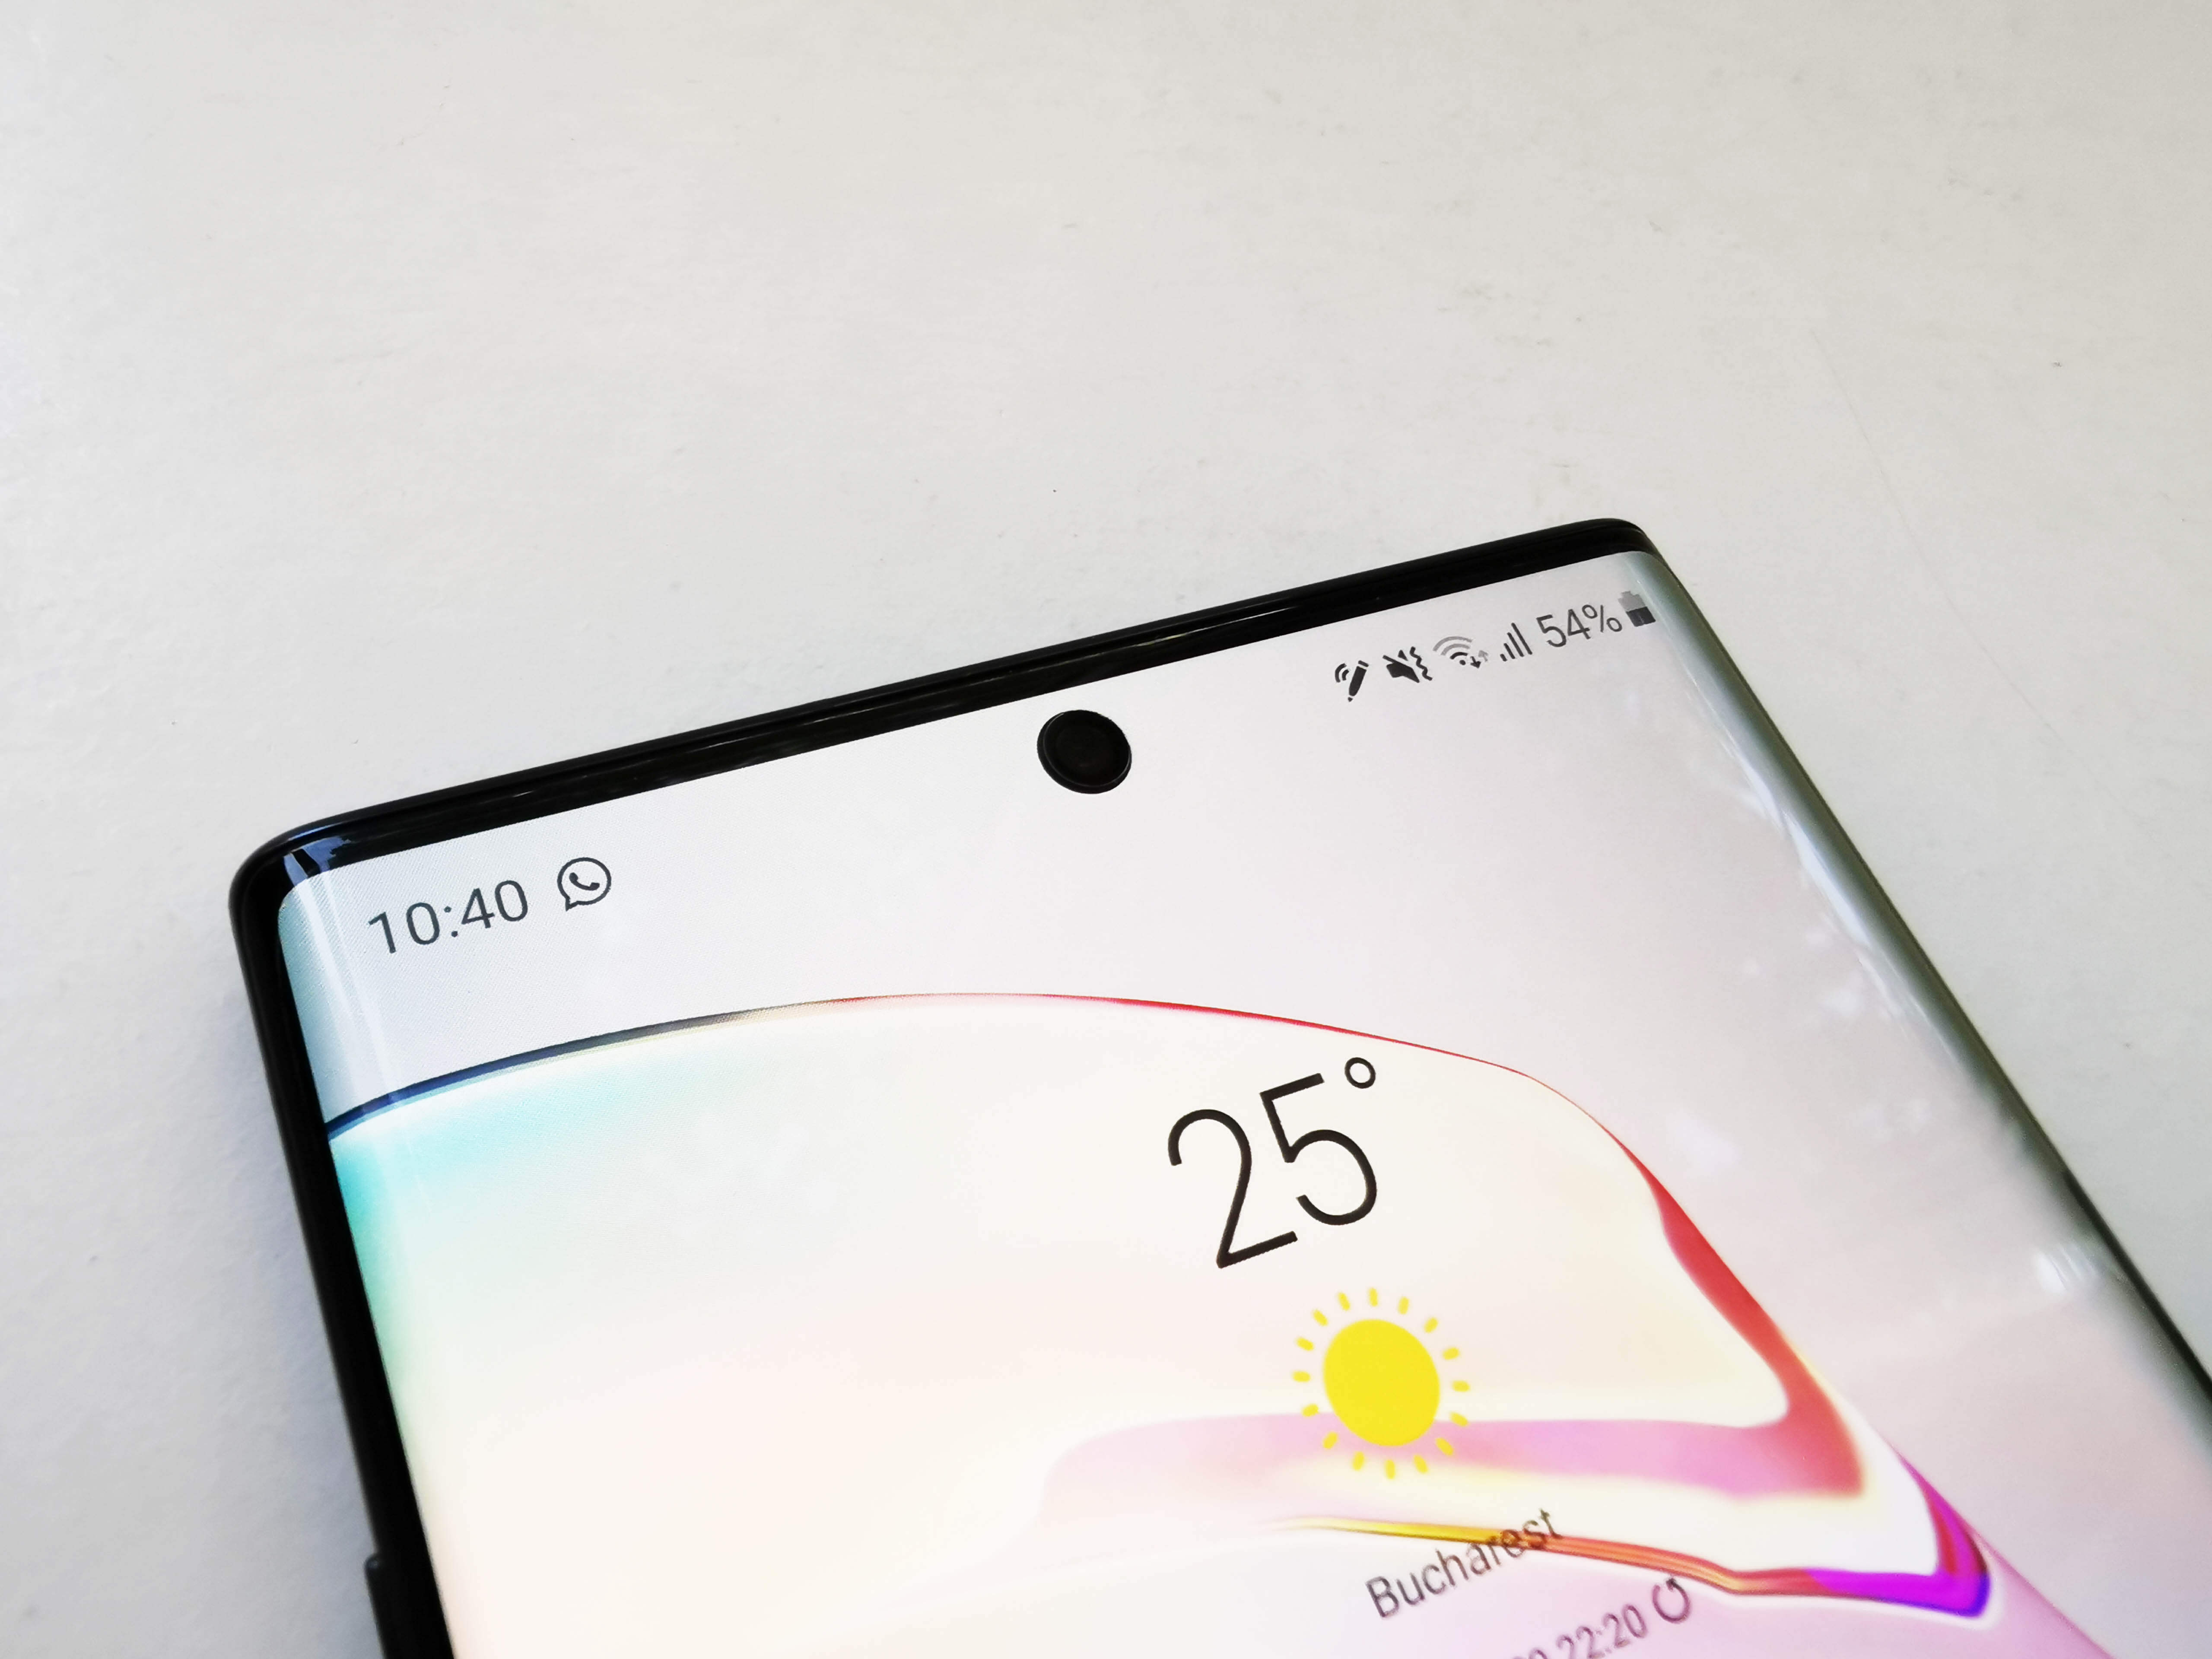 Samsung Galaxy Note10 Plus Review Romana si Pareri - 1